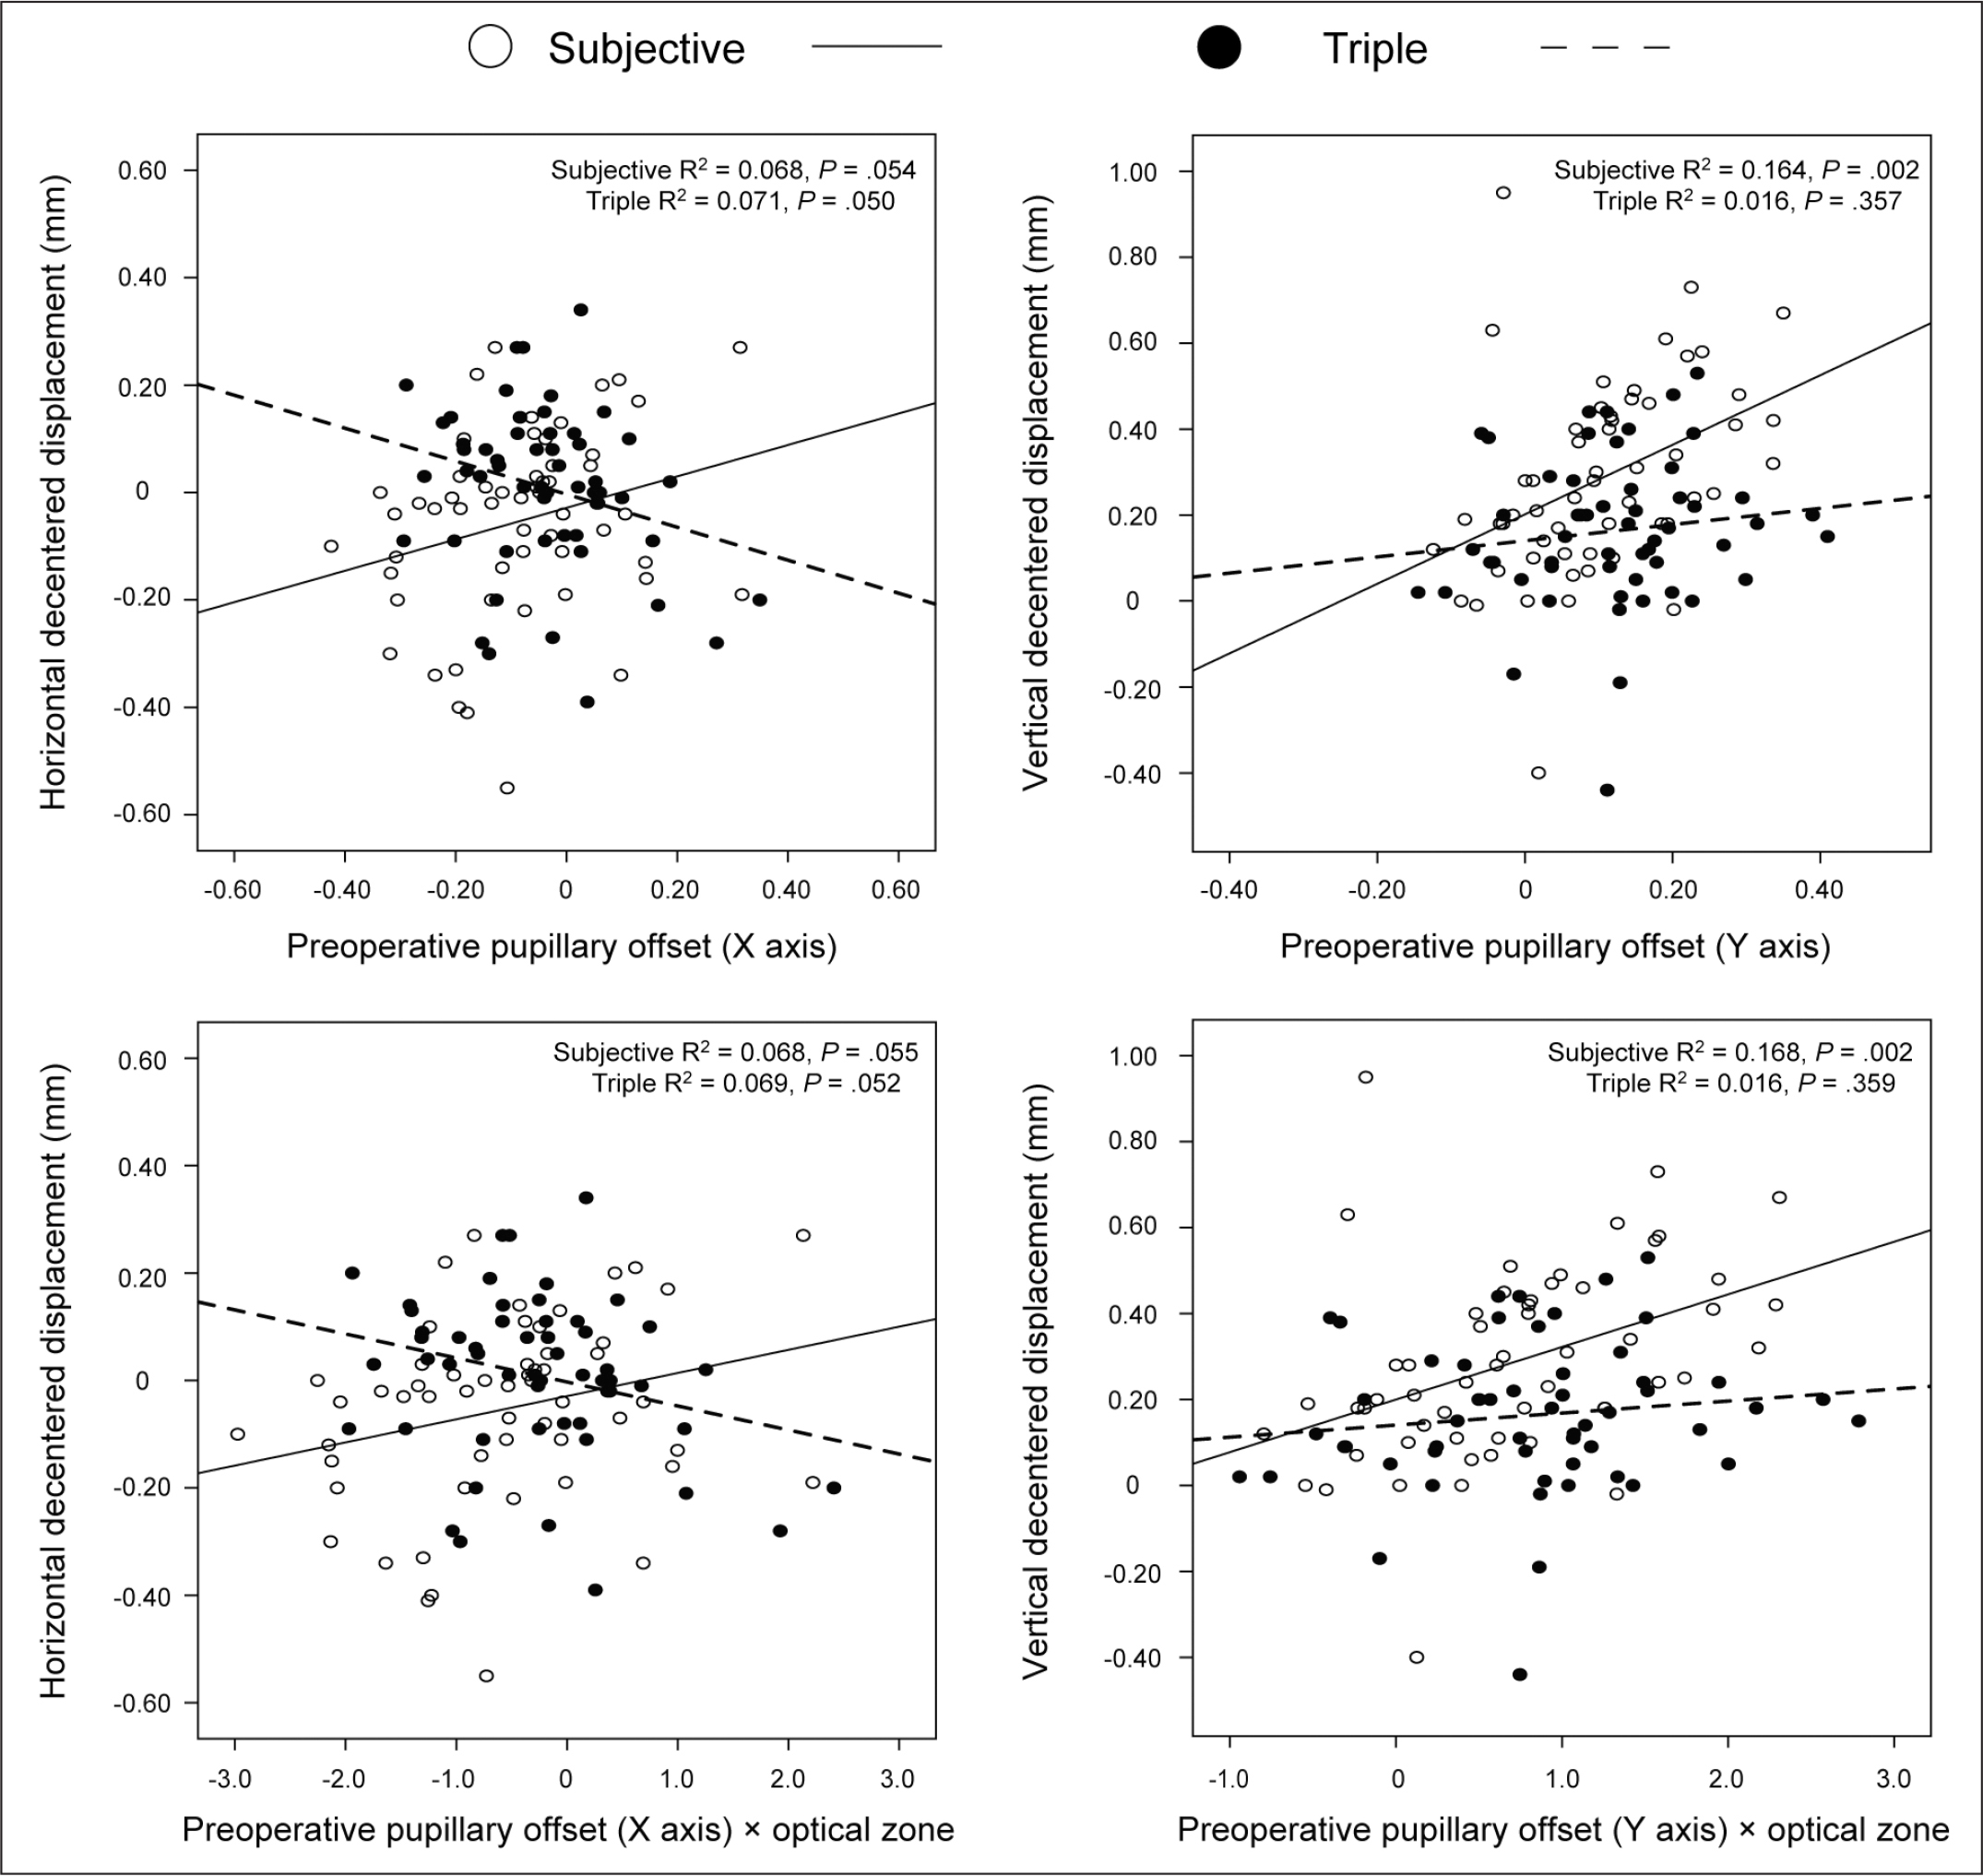 Relationship between the preoperative pupillary offset and decentered displacement after small incision lenticule extraction with the subjective patient fixation method or triple marking centration method.